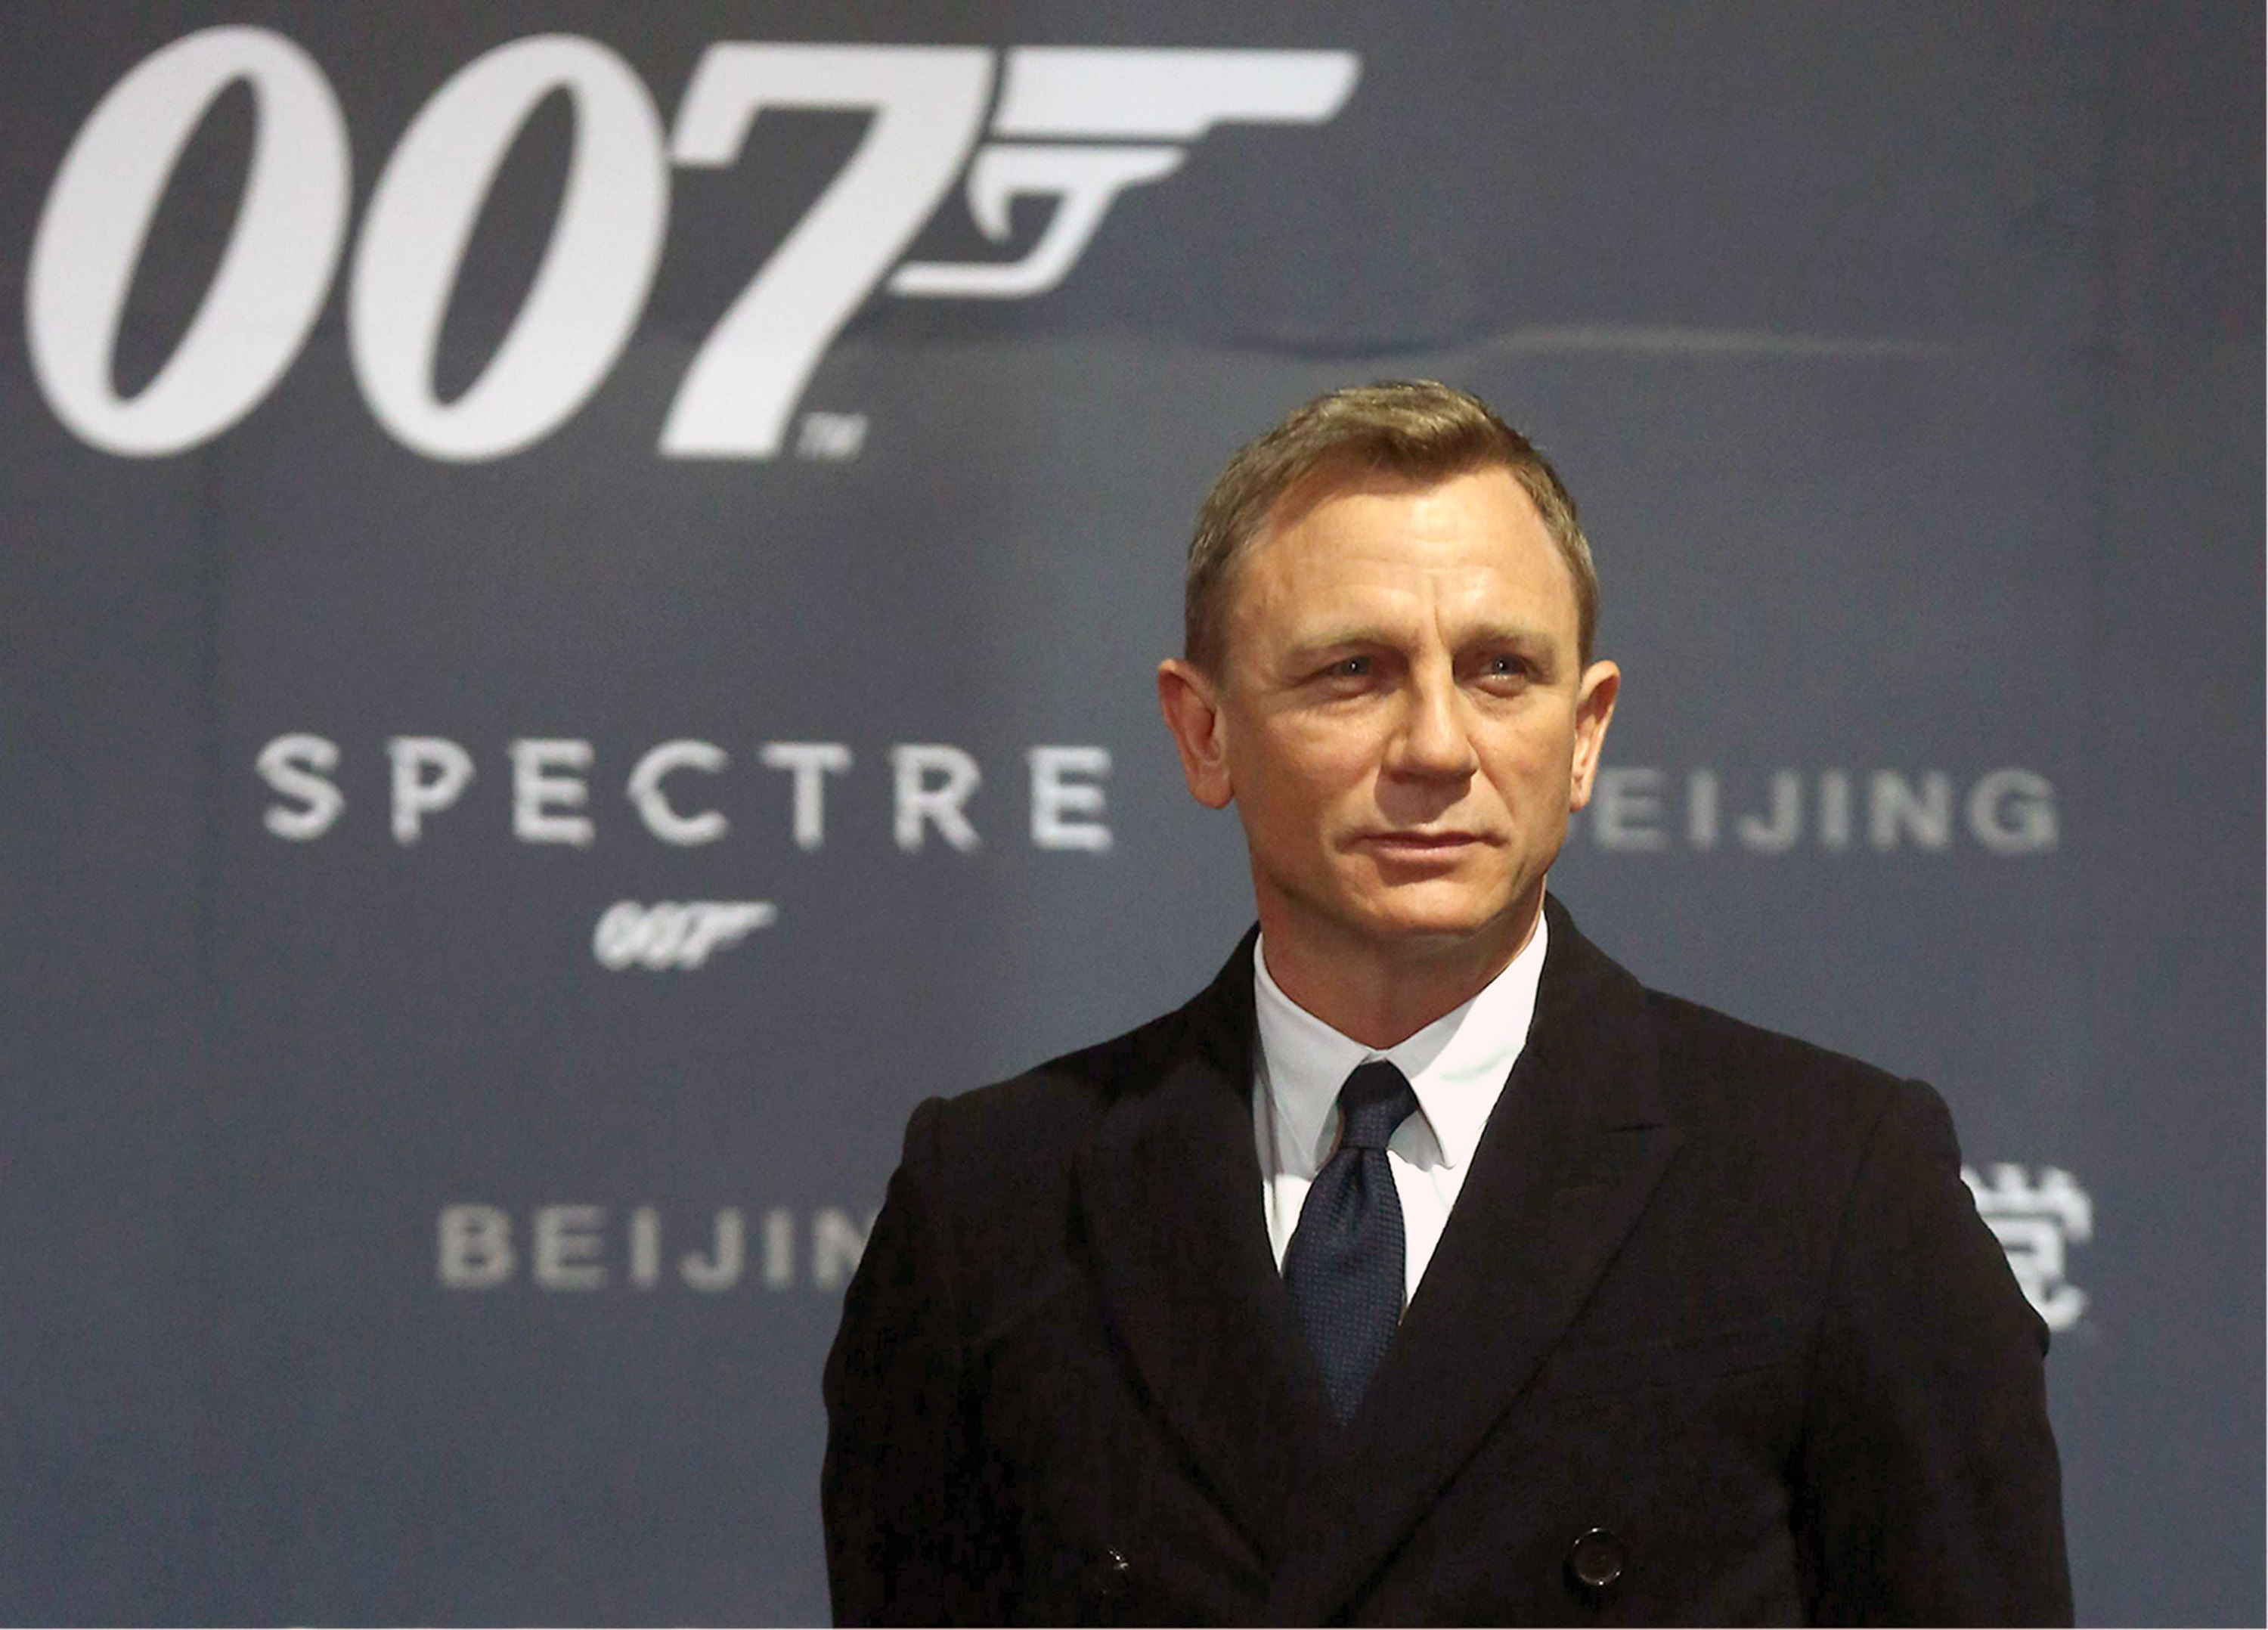 Actor Daniel Craig attends 'Spectre' premiere at The Place on Nov. 12, 2015 in Beijing, China.